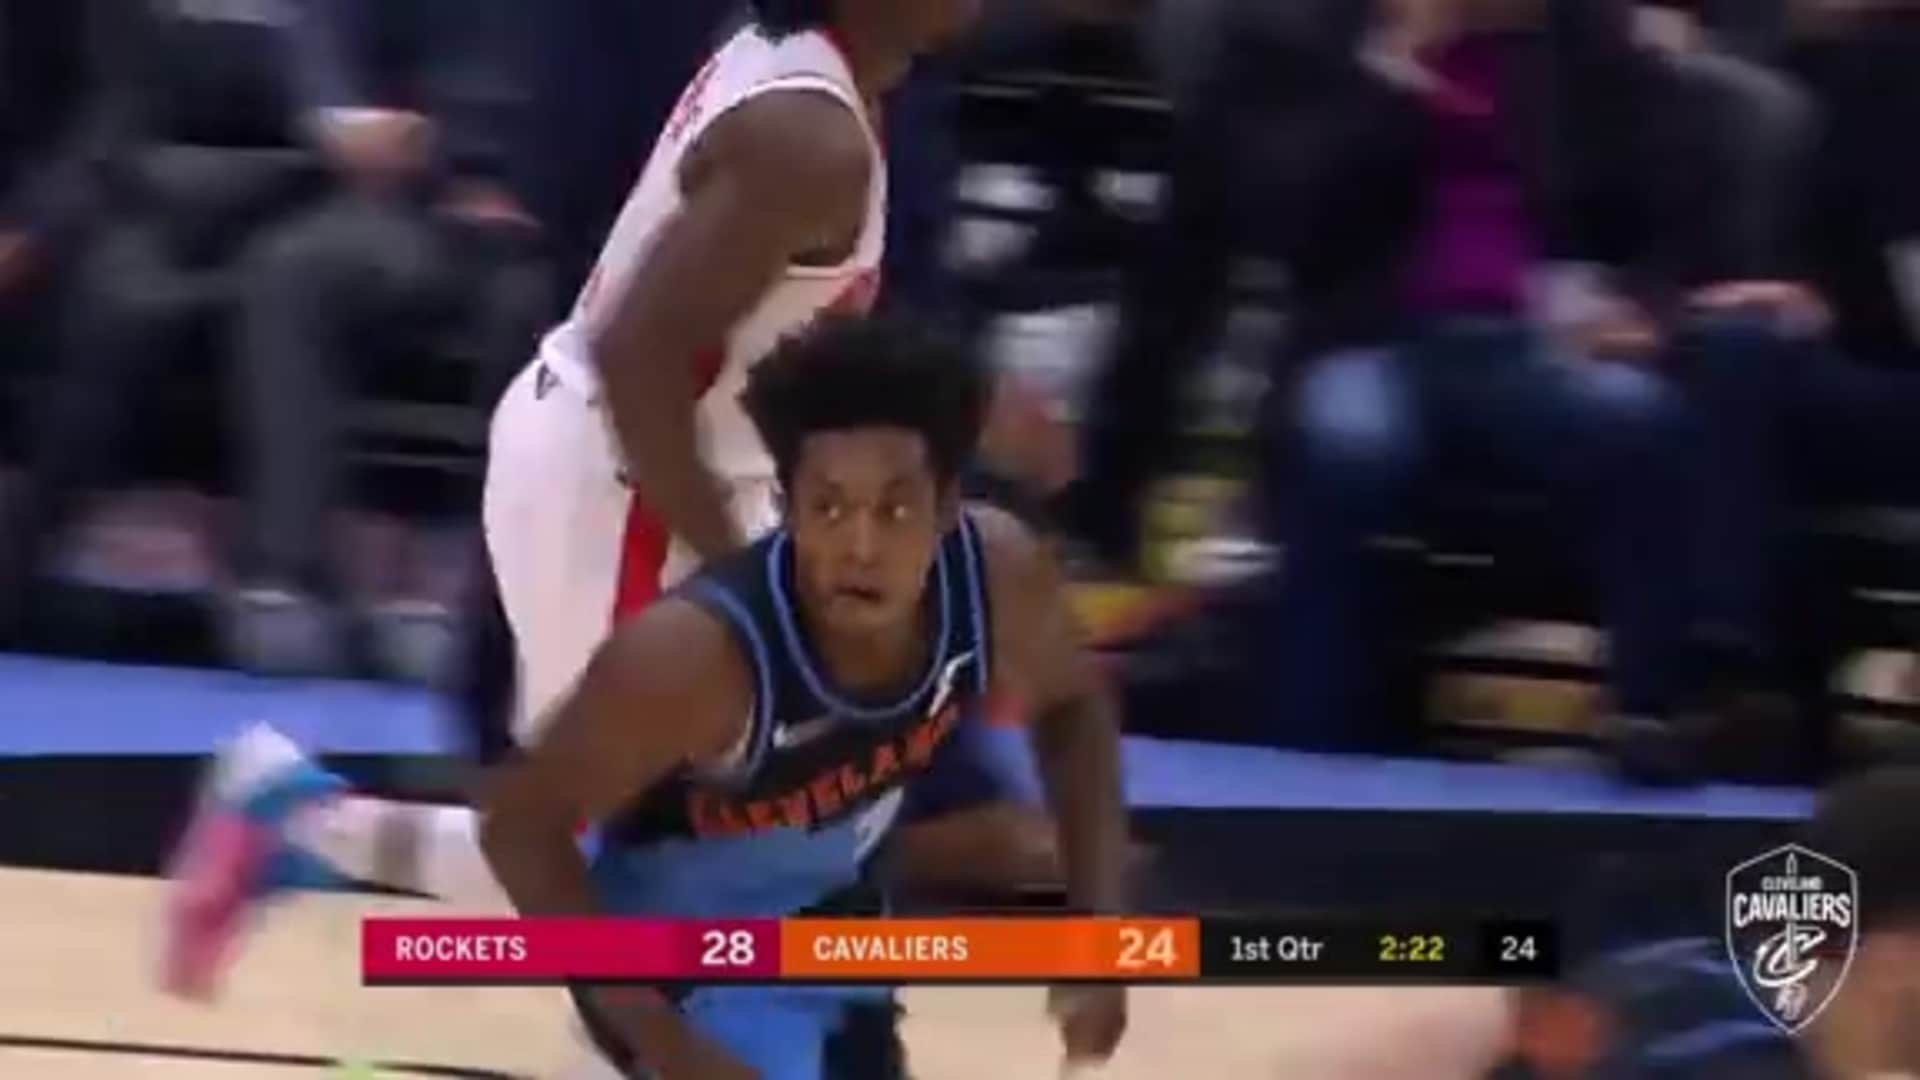 Sexton Goes Up and Under to Score